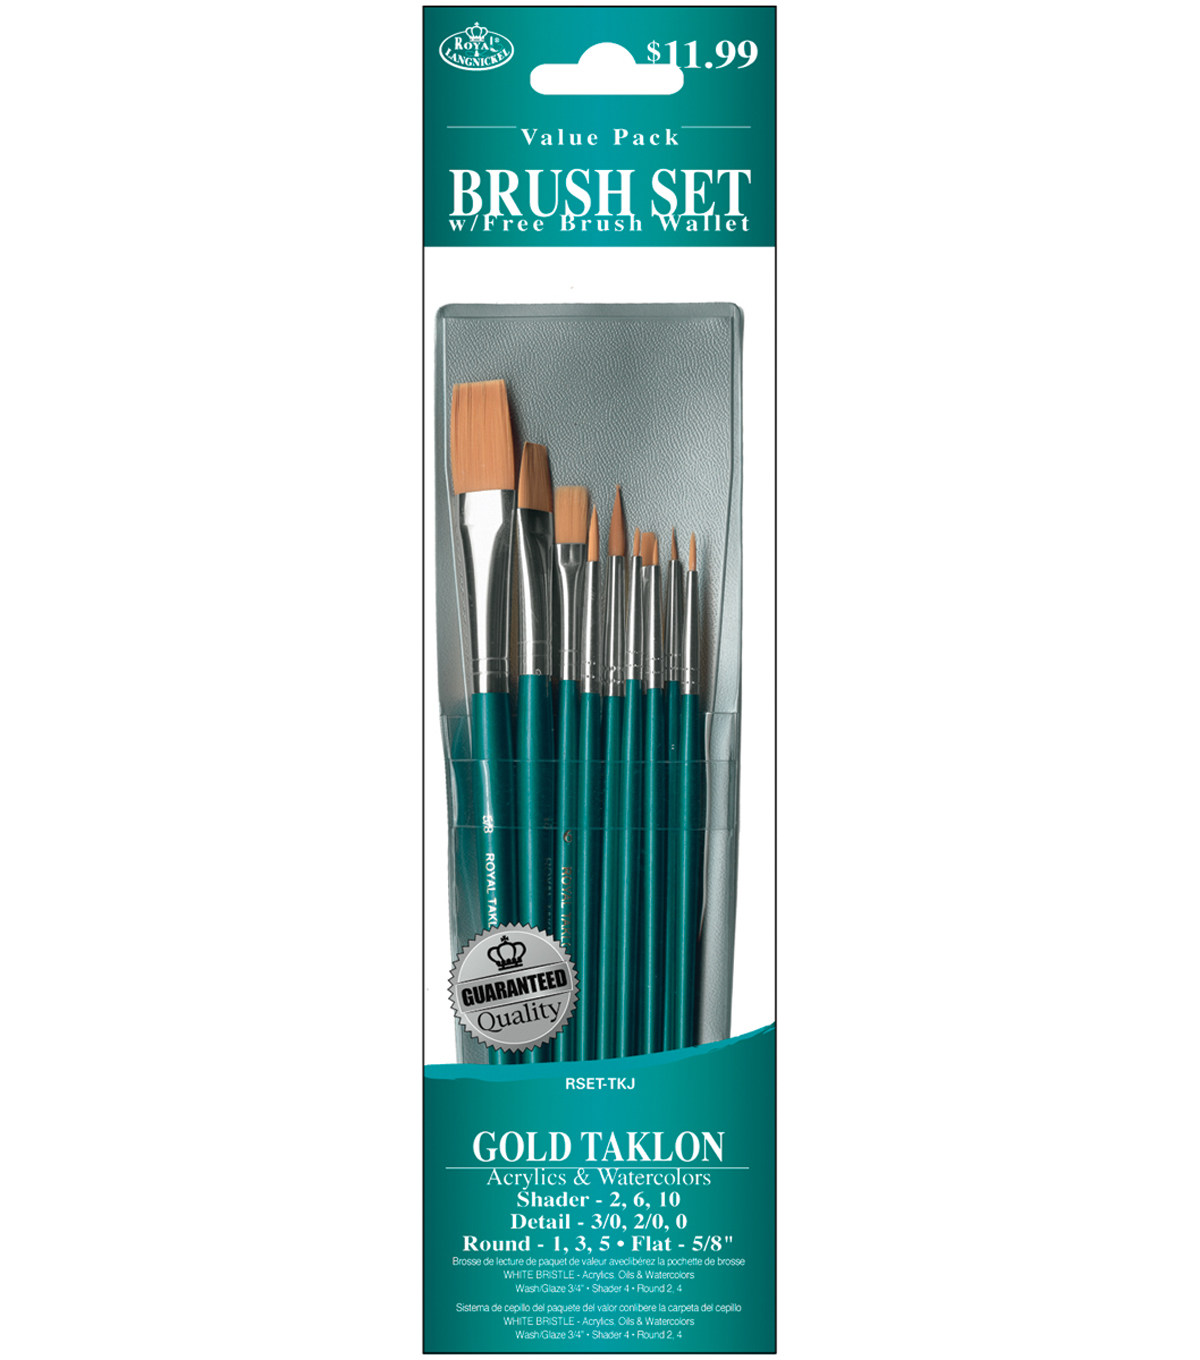 Gold Taklon Value Pack Brush Set 10 Pack